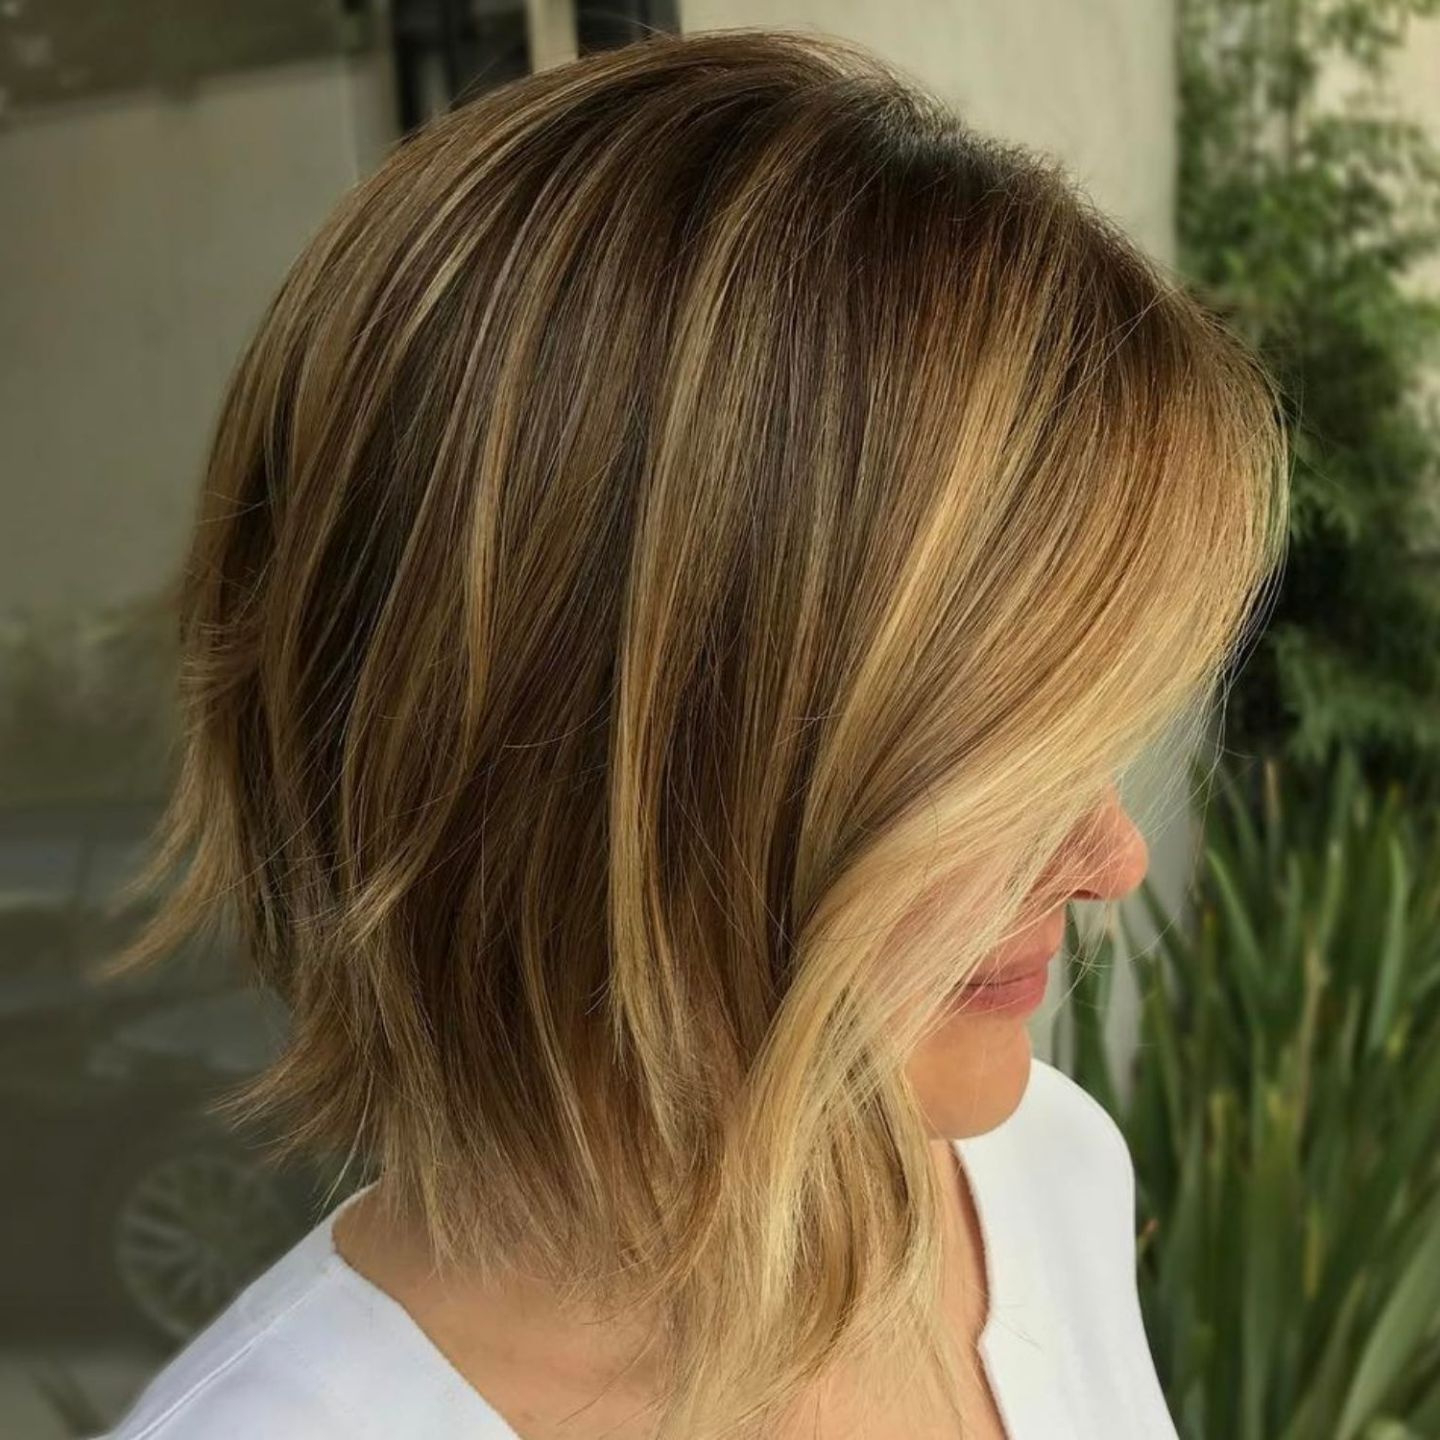 Hairstyles : Razored Blonde Bob Delightful 60 Beautiful And With Regard To Well Known Razored Blonde Bob Haircuts With Bangs (View 13 of 20)